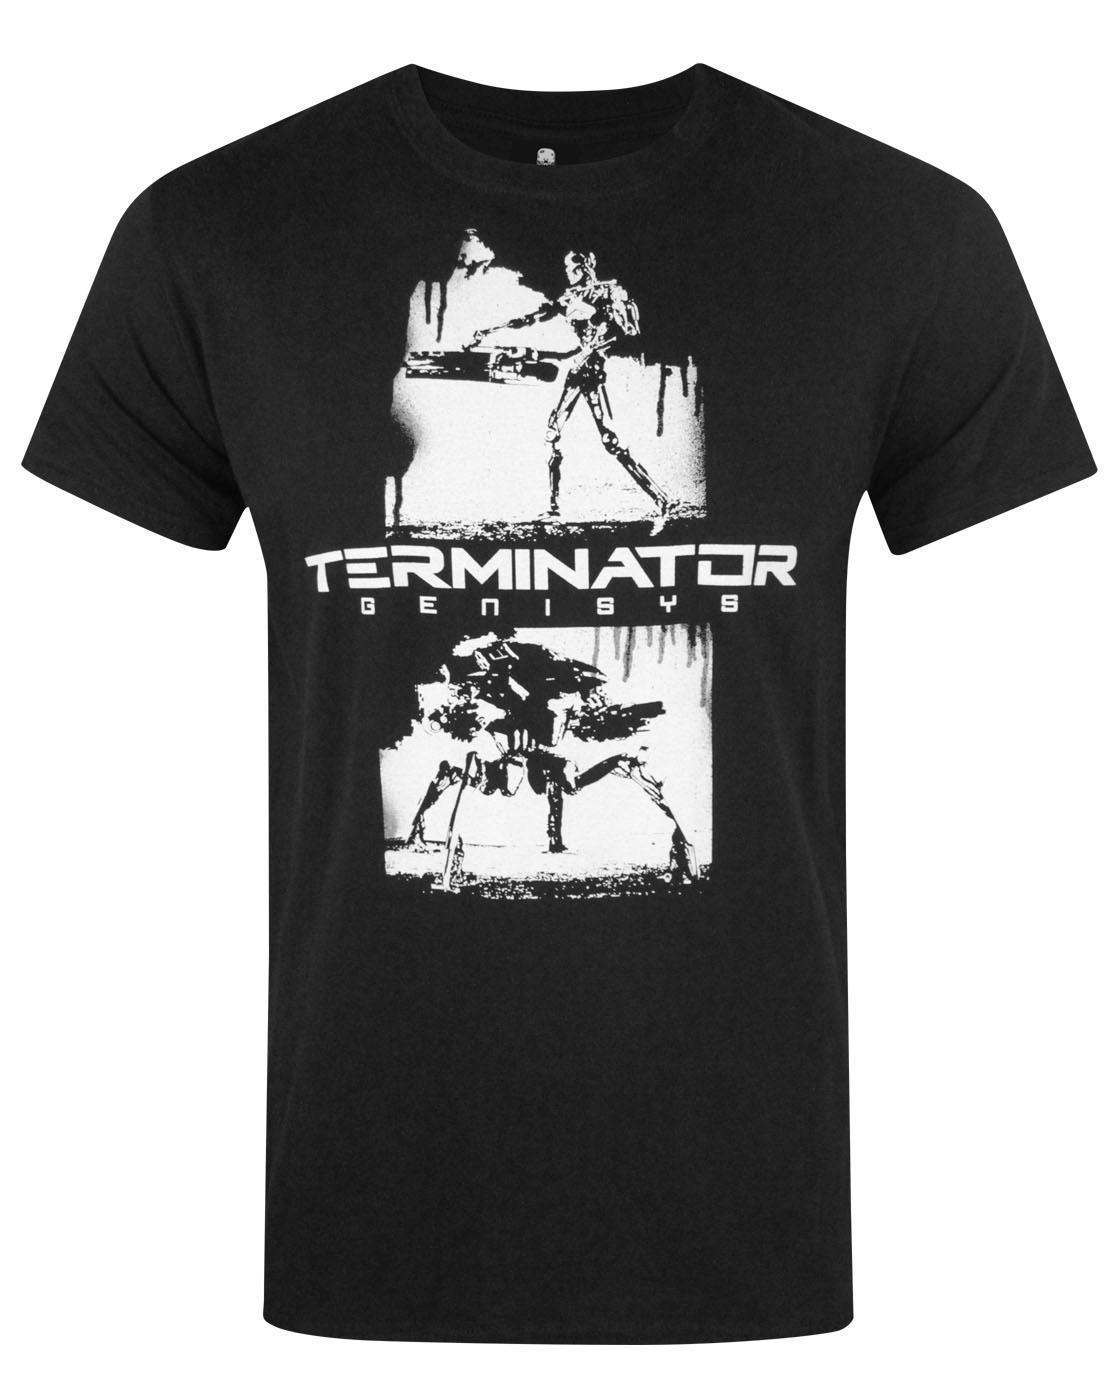 Terminator genisys graffiti mens t shirt online with 12 98 piece on moviethirts store dhgate com